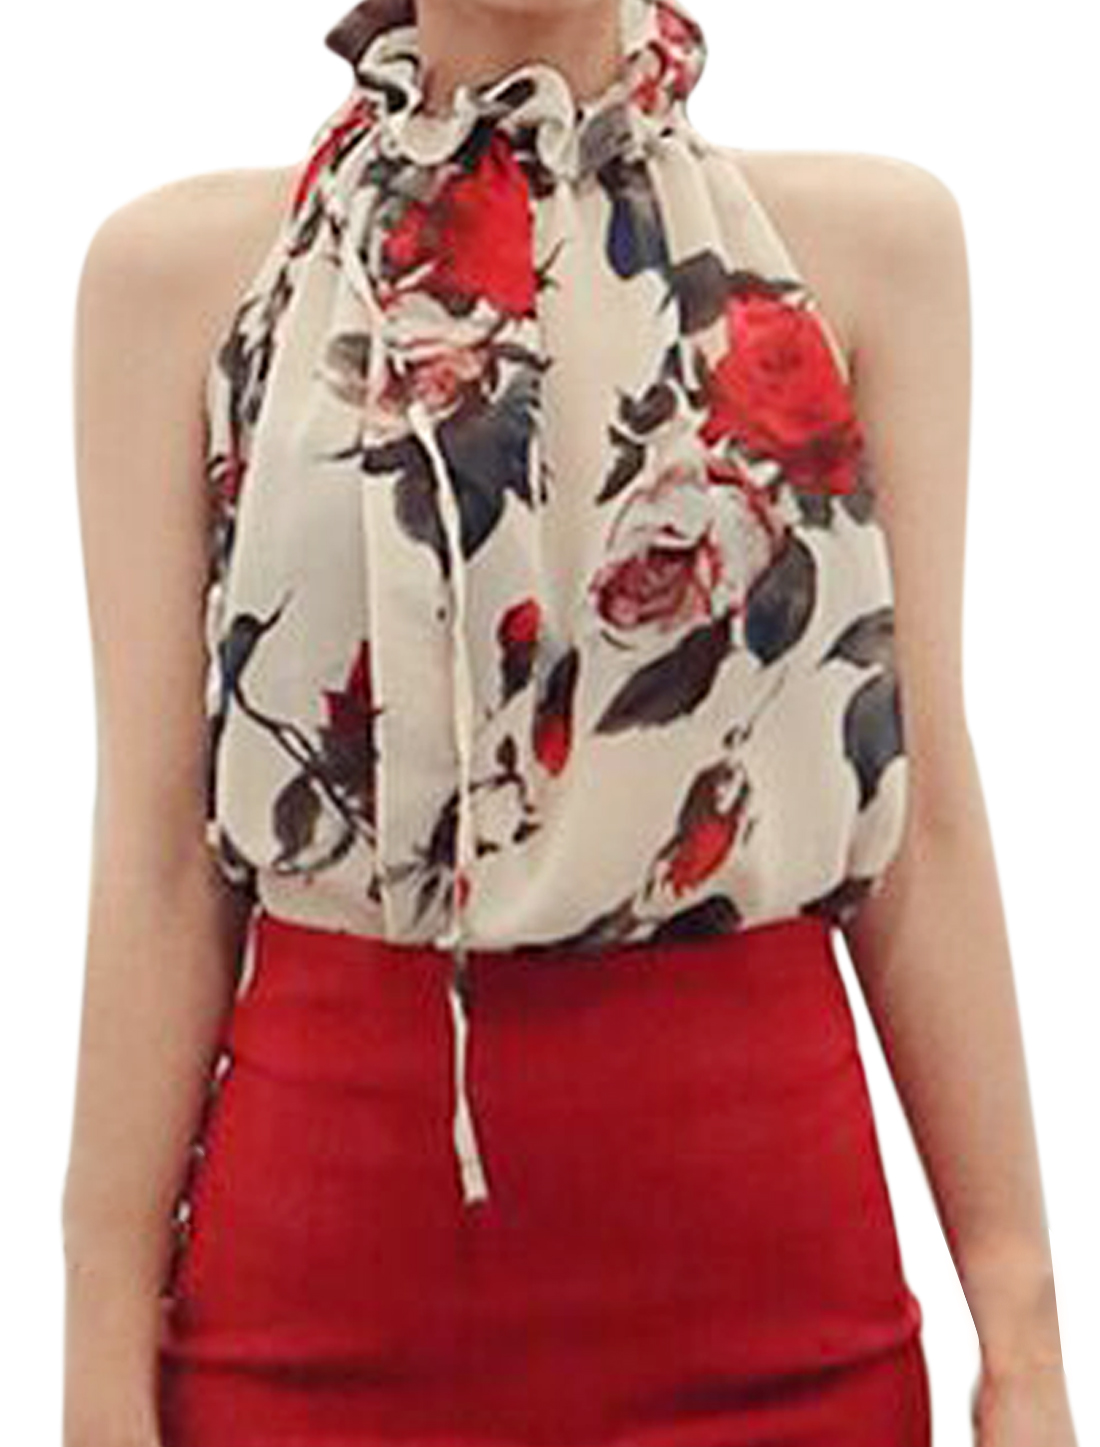 Women Sleeveless Tie Neck Floral Print Casual Chiffon Top Beige Red M